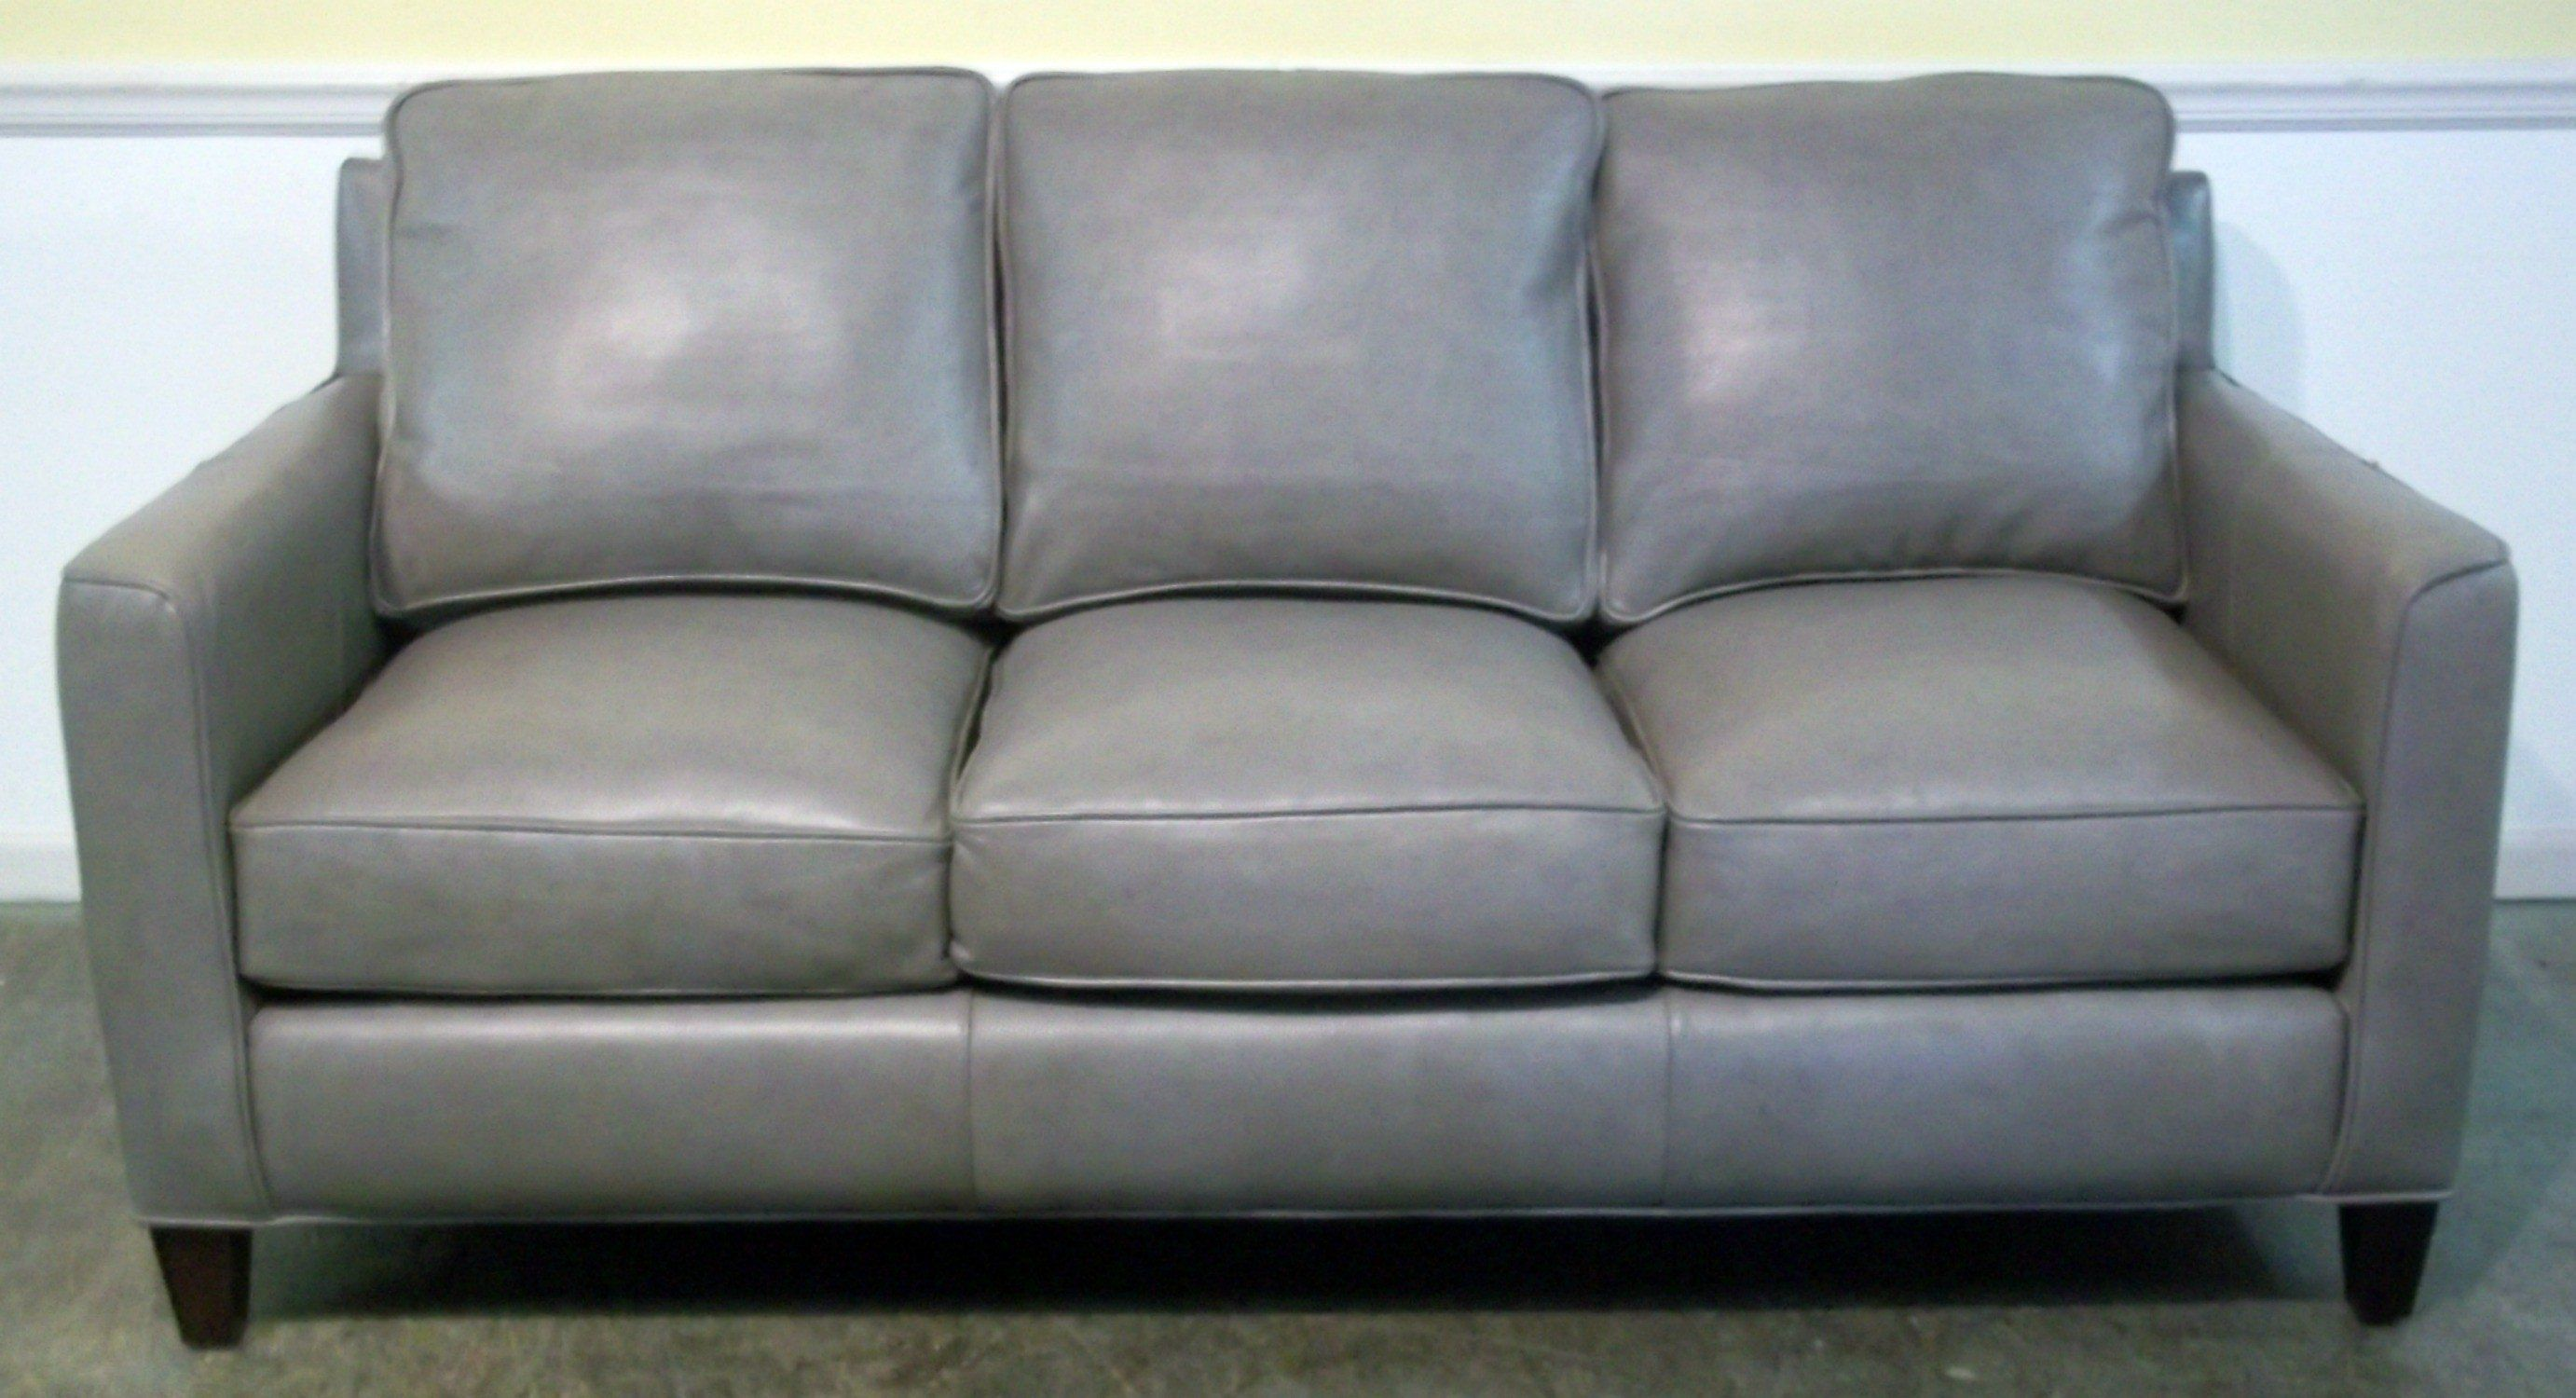 - Image Result For Aran Sofa Faux Leather Sofa, Grey Leather Sofa